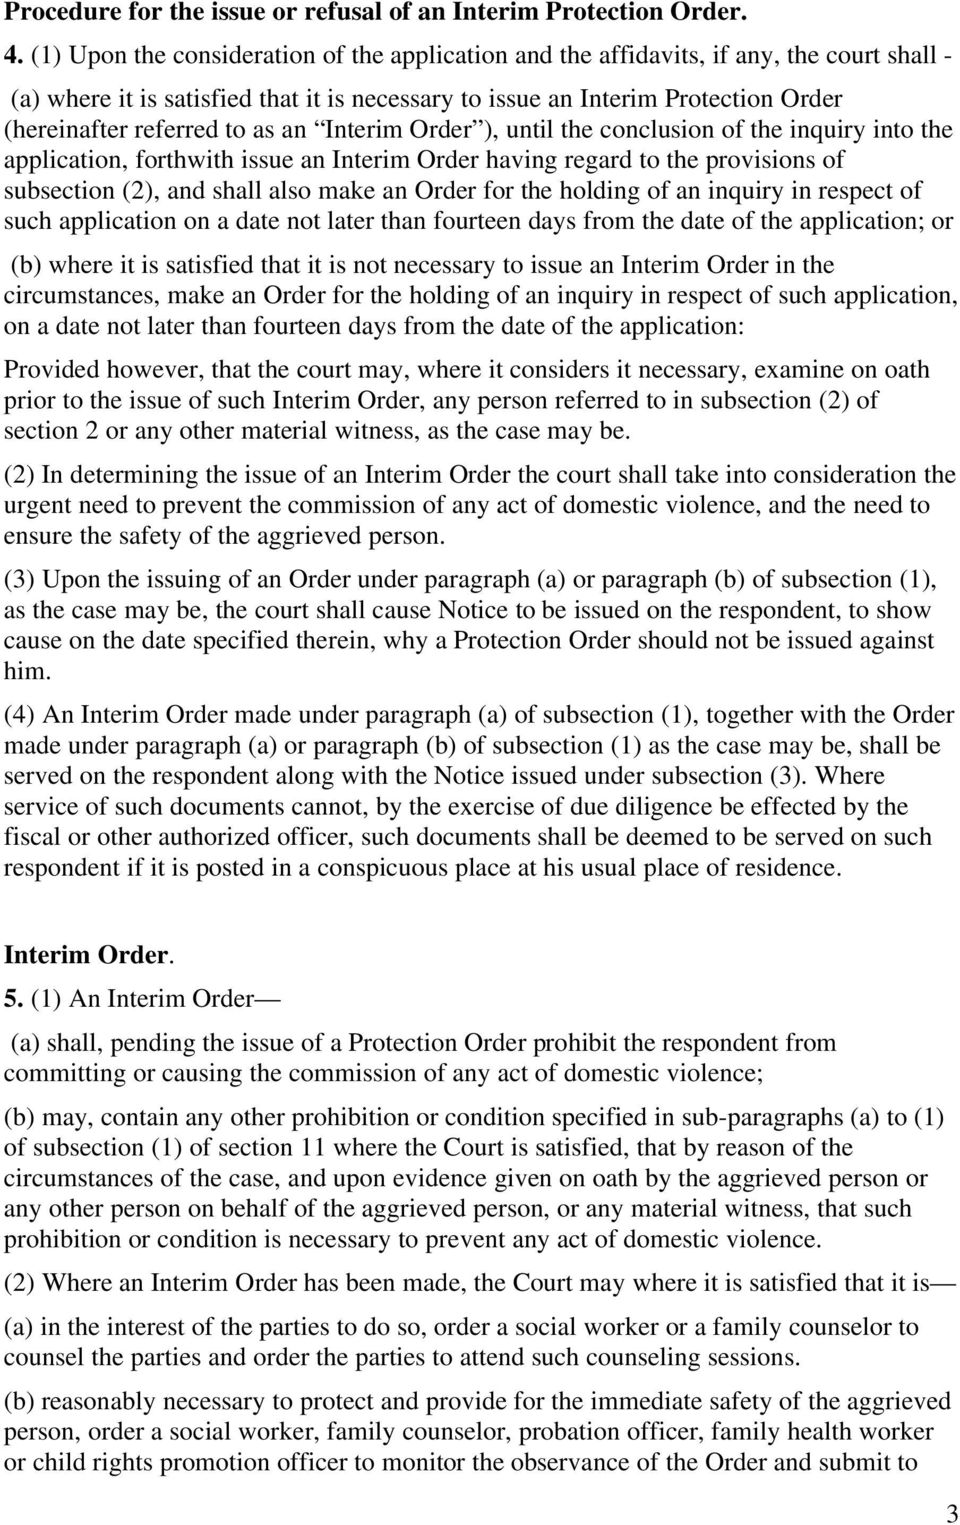 to as an Interim Order ), until the conclusion of the inquiry into the application, forthwith issue an Interim Order having regard to the provisions of subsection (2), and shall also make an Order